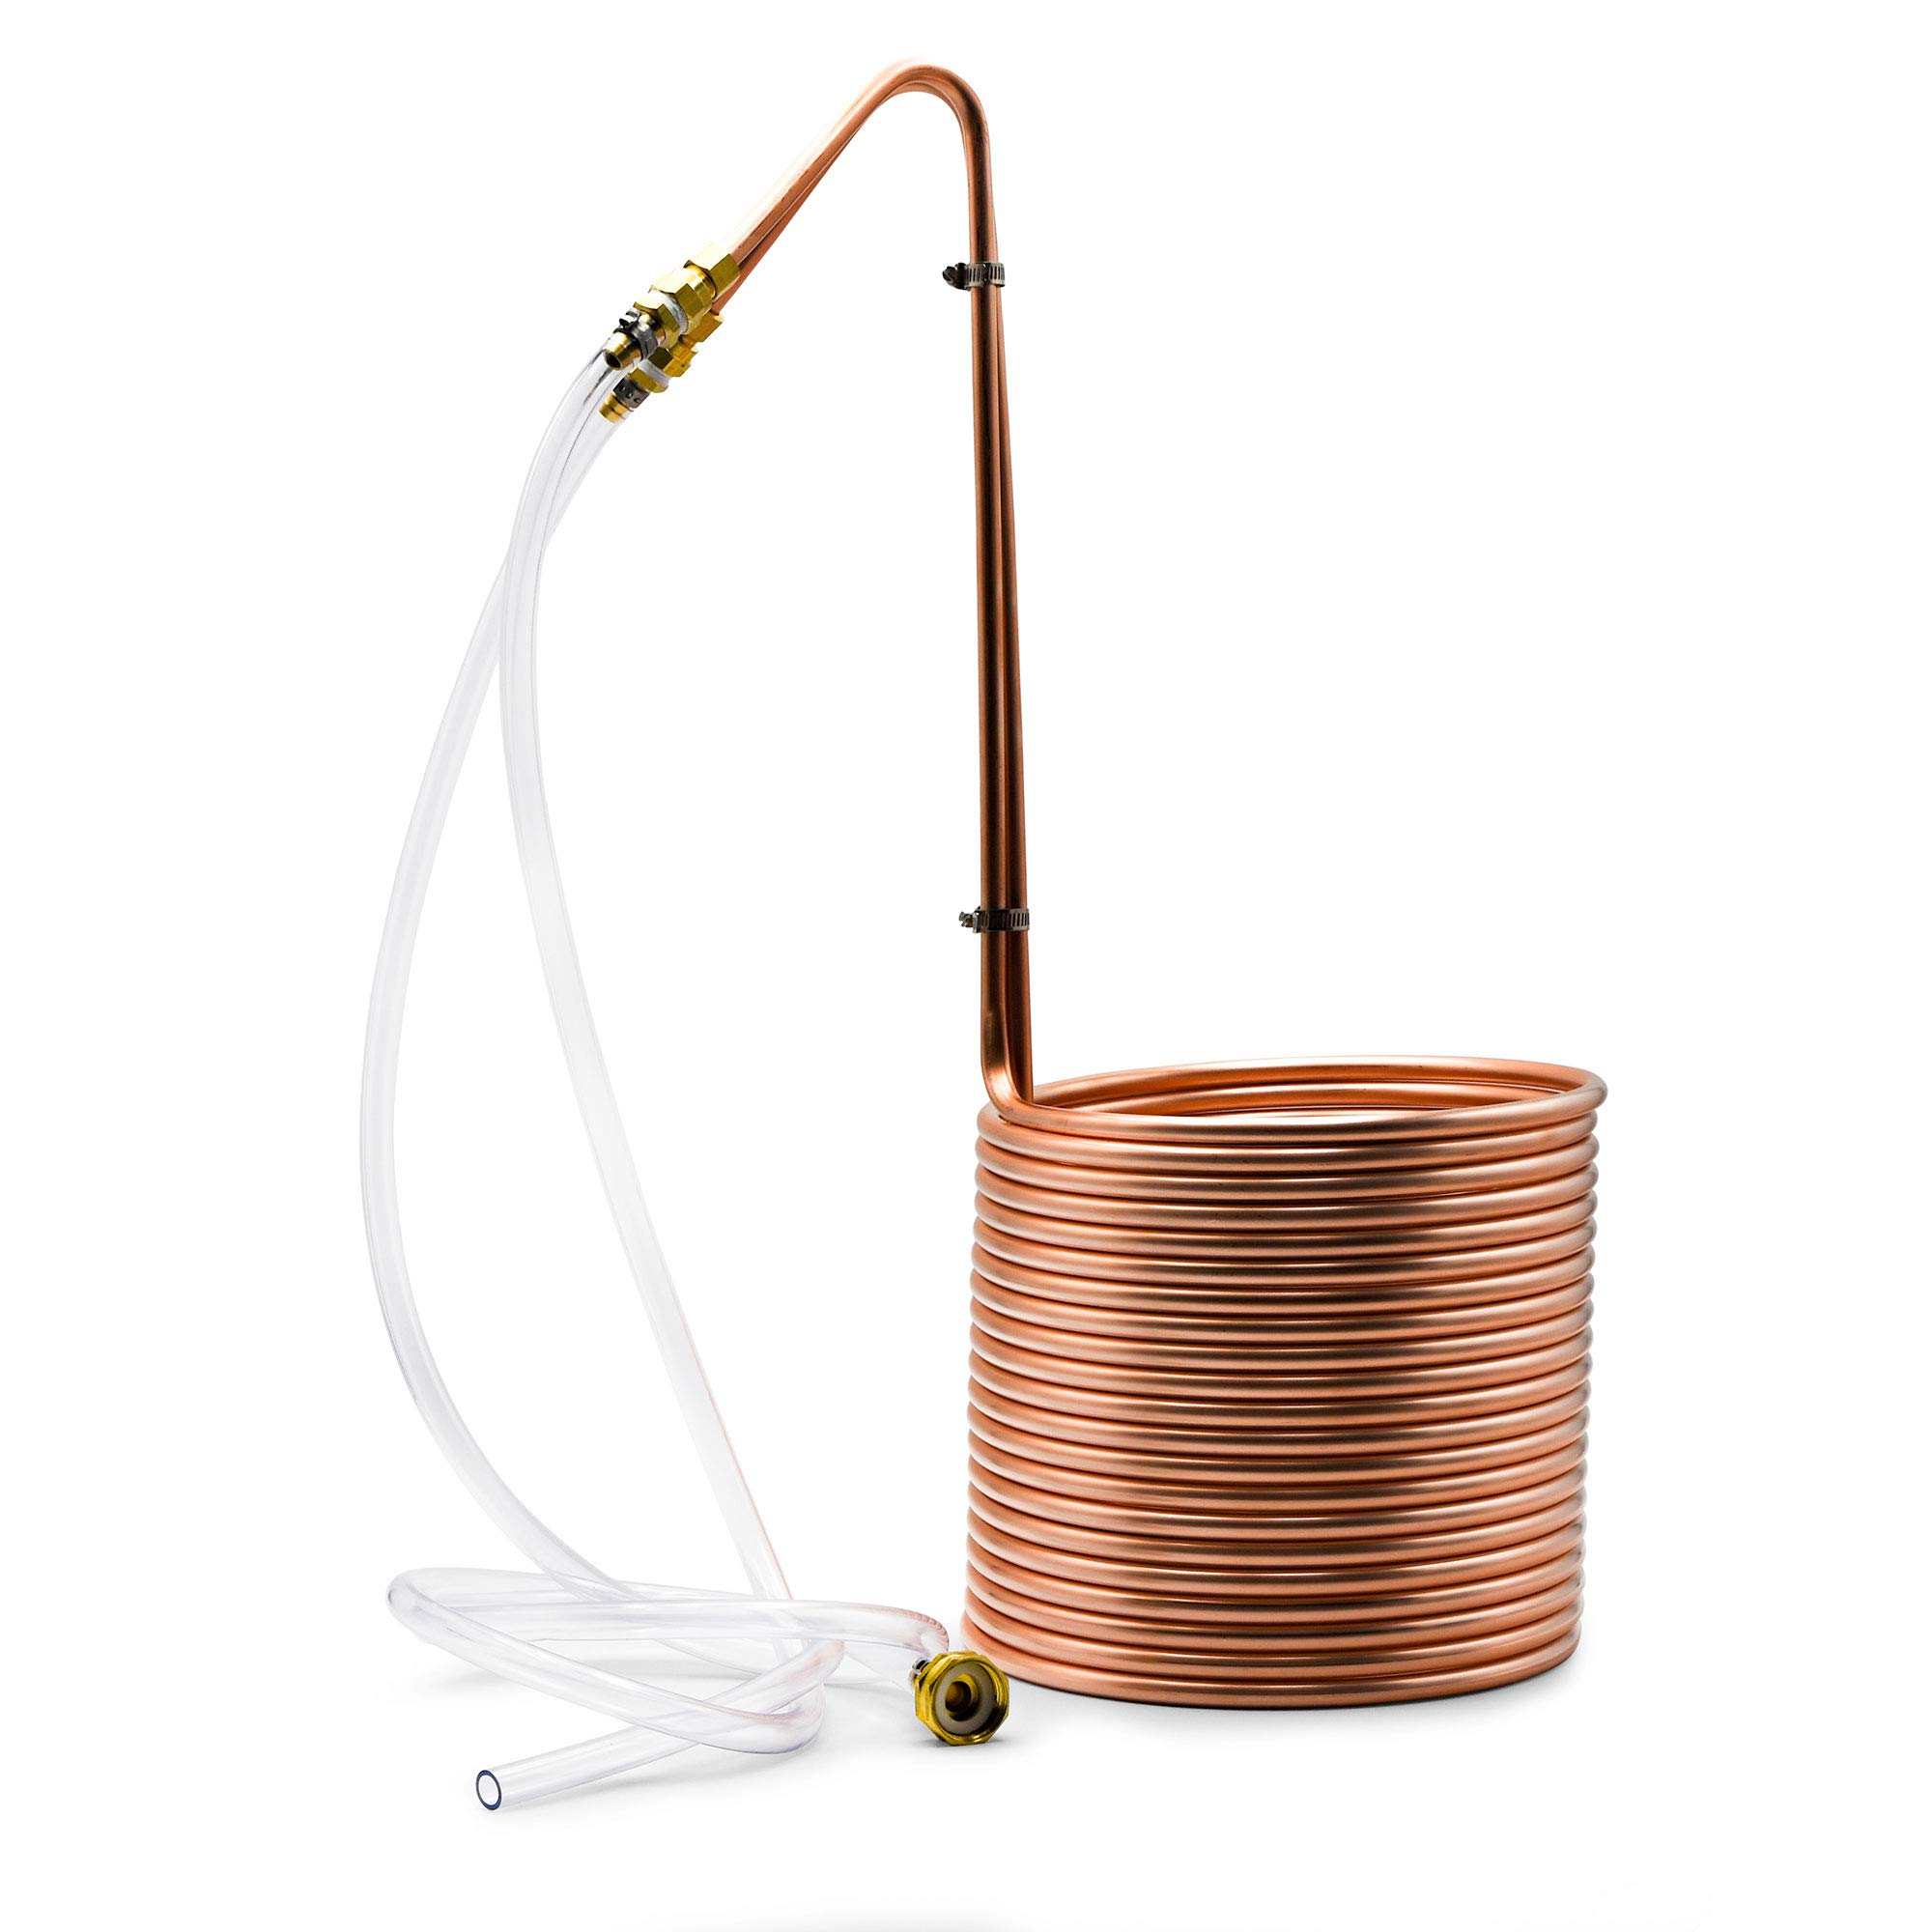 Northern Brewer - Copperhead 50 Foot Copper Immersion Wort Chiller for Beer Brewing Coil with Vinyl Tubing and Garden Hose Connection